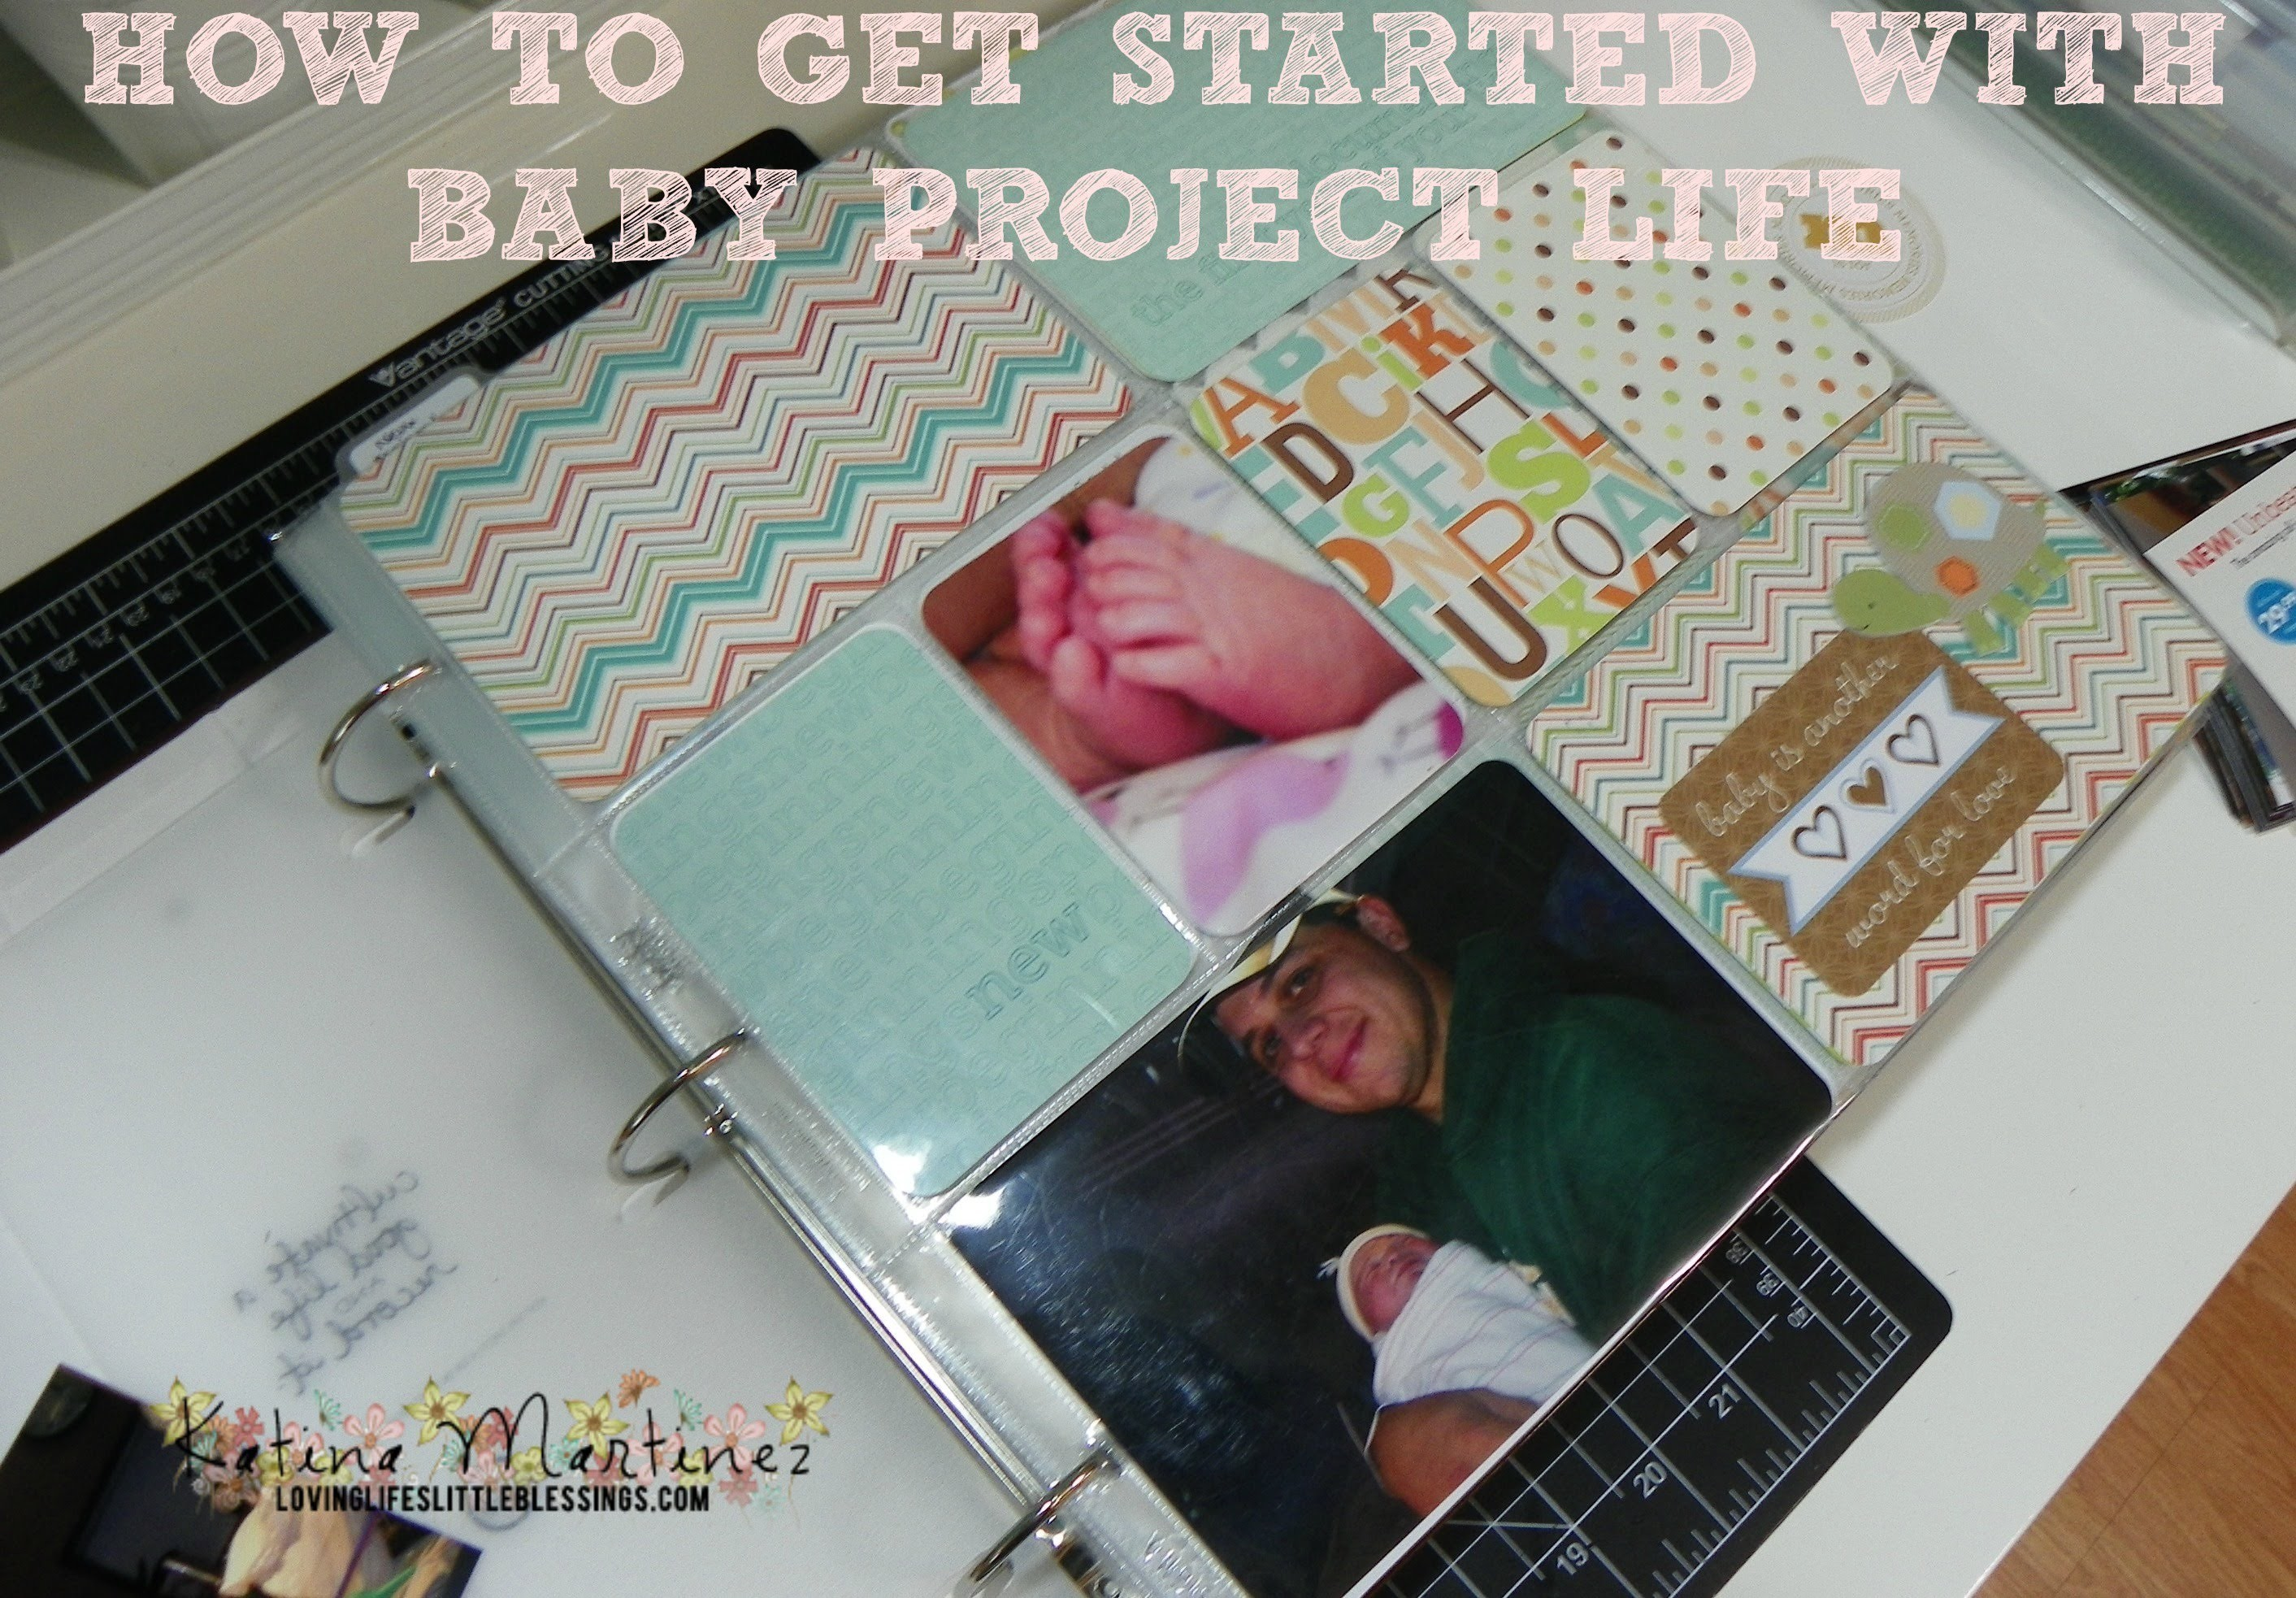 Getting Started With Project Life for Baby